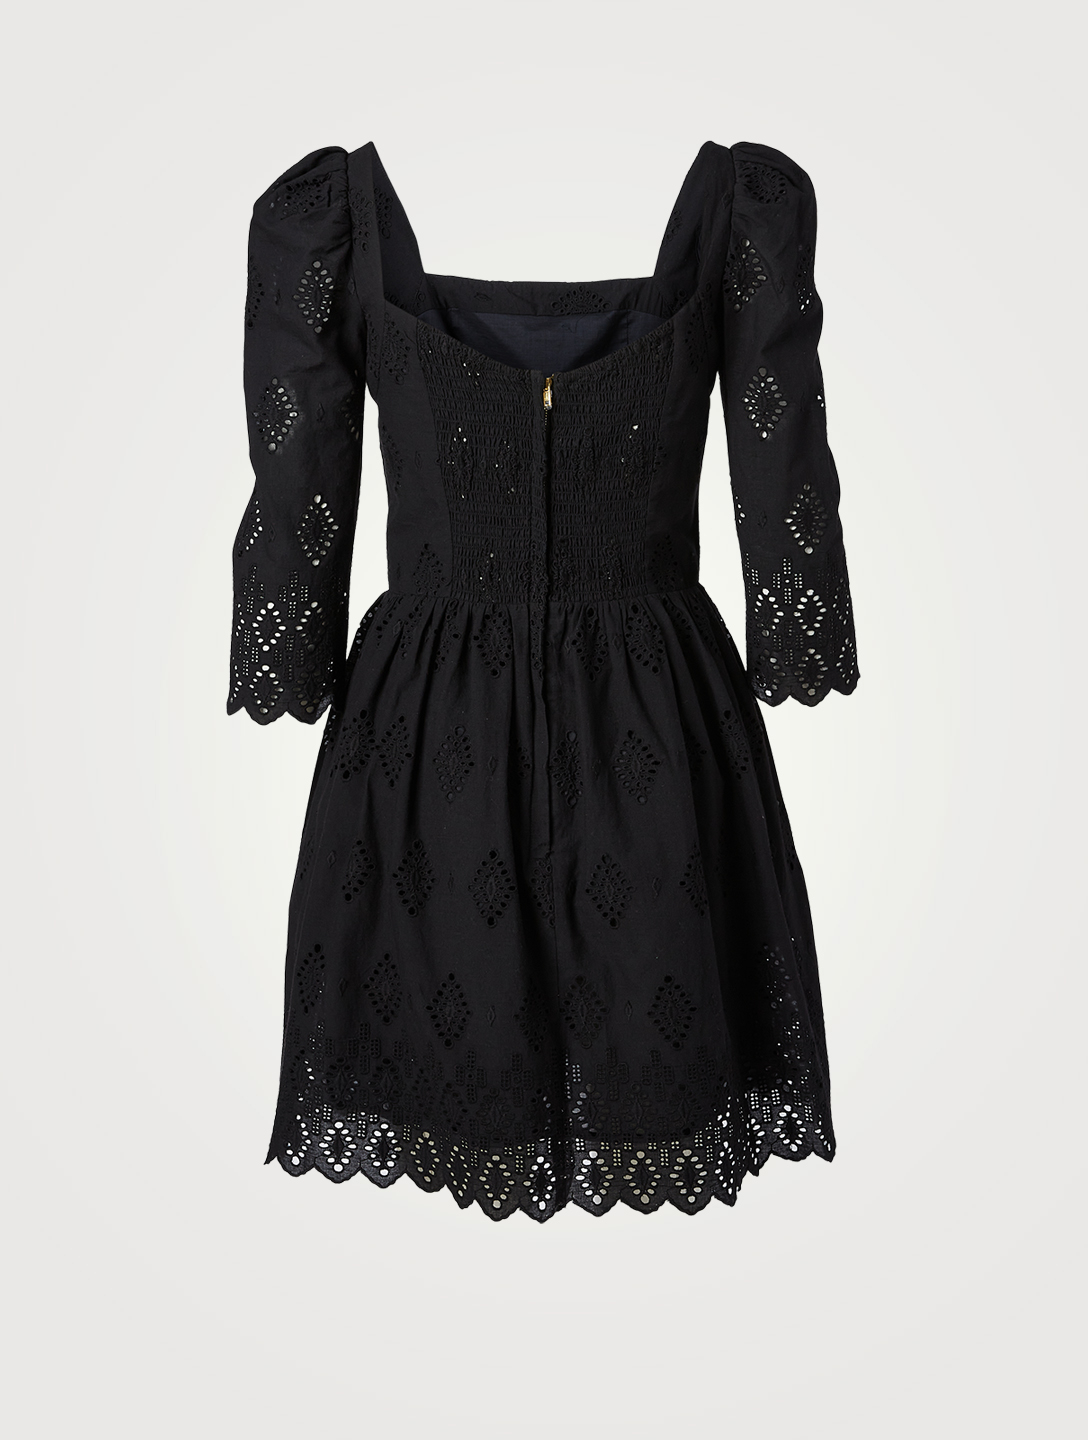 CARA CARA Hart Eyelet Mini Dress Women's Black